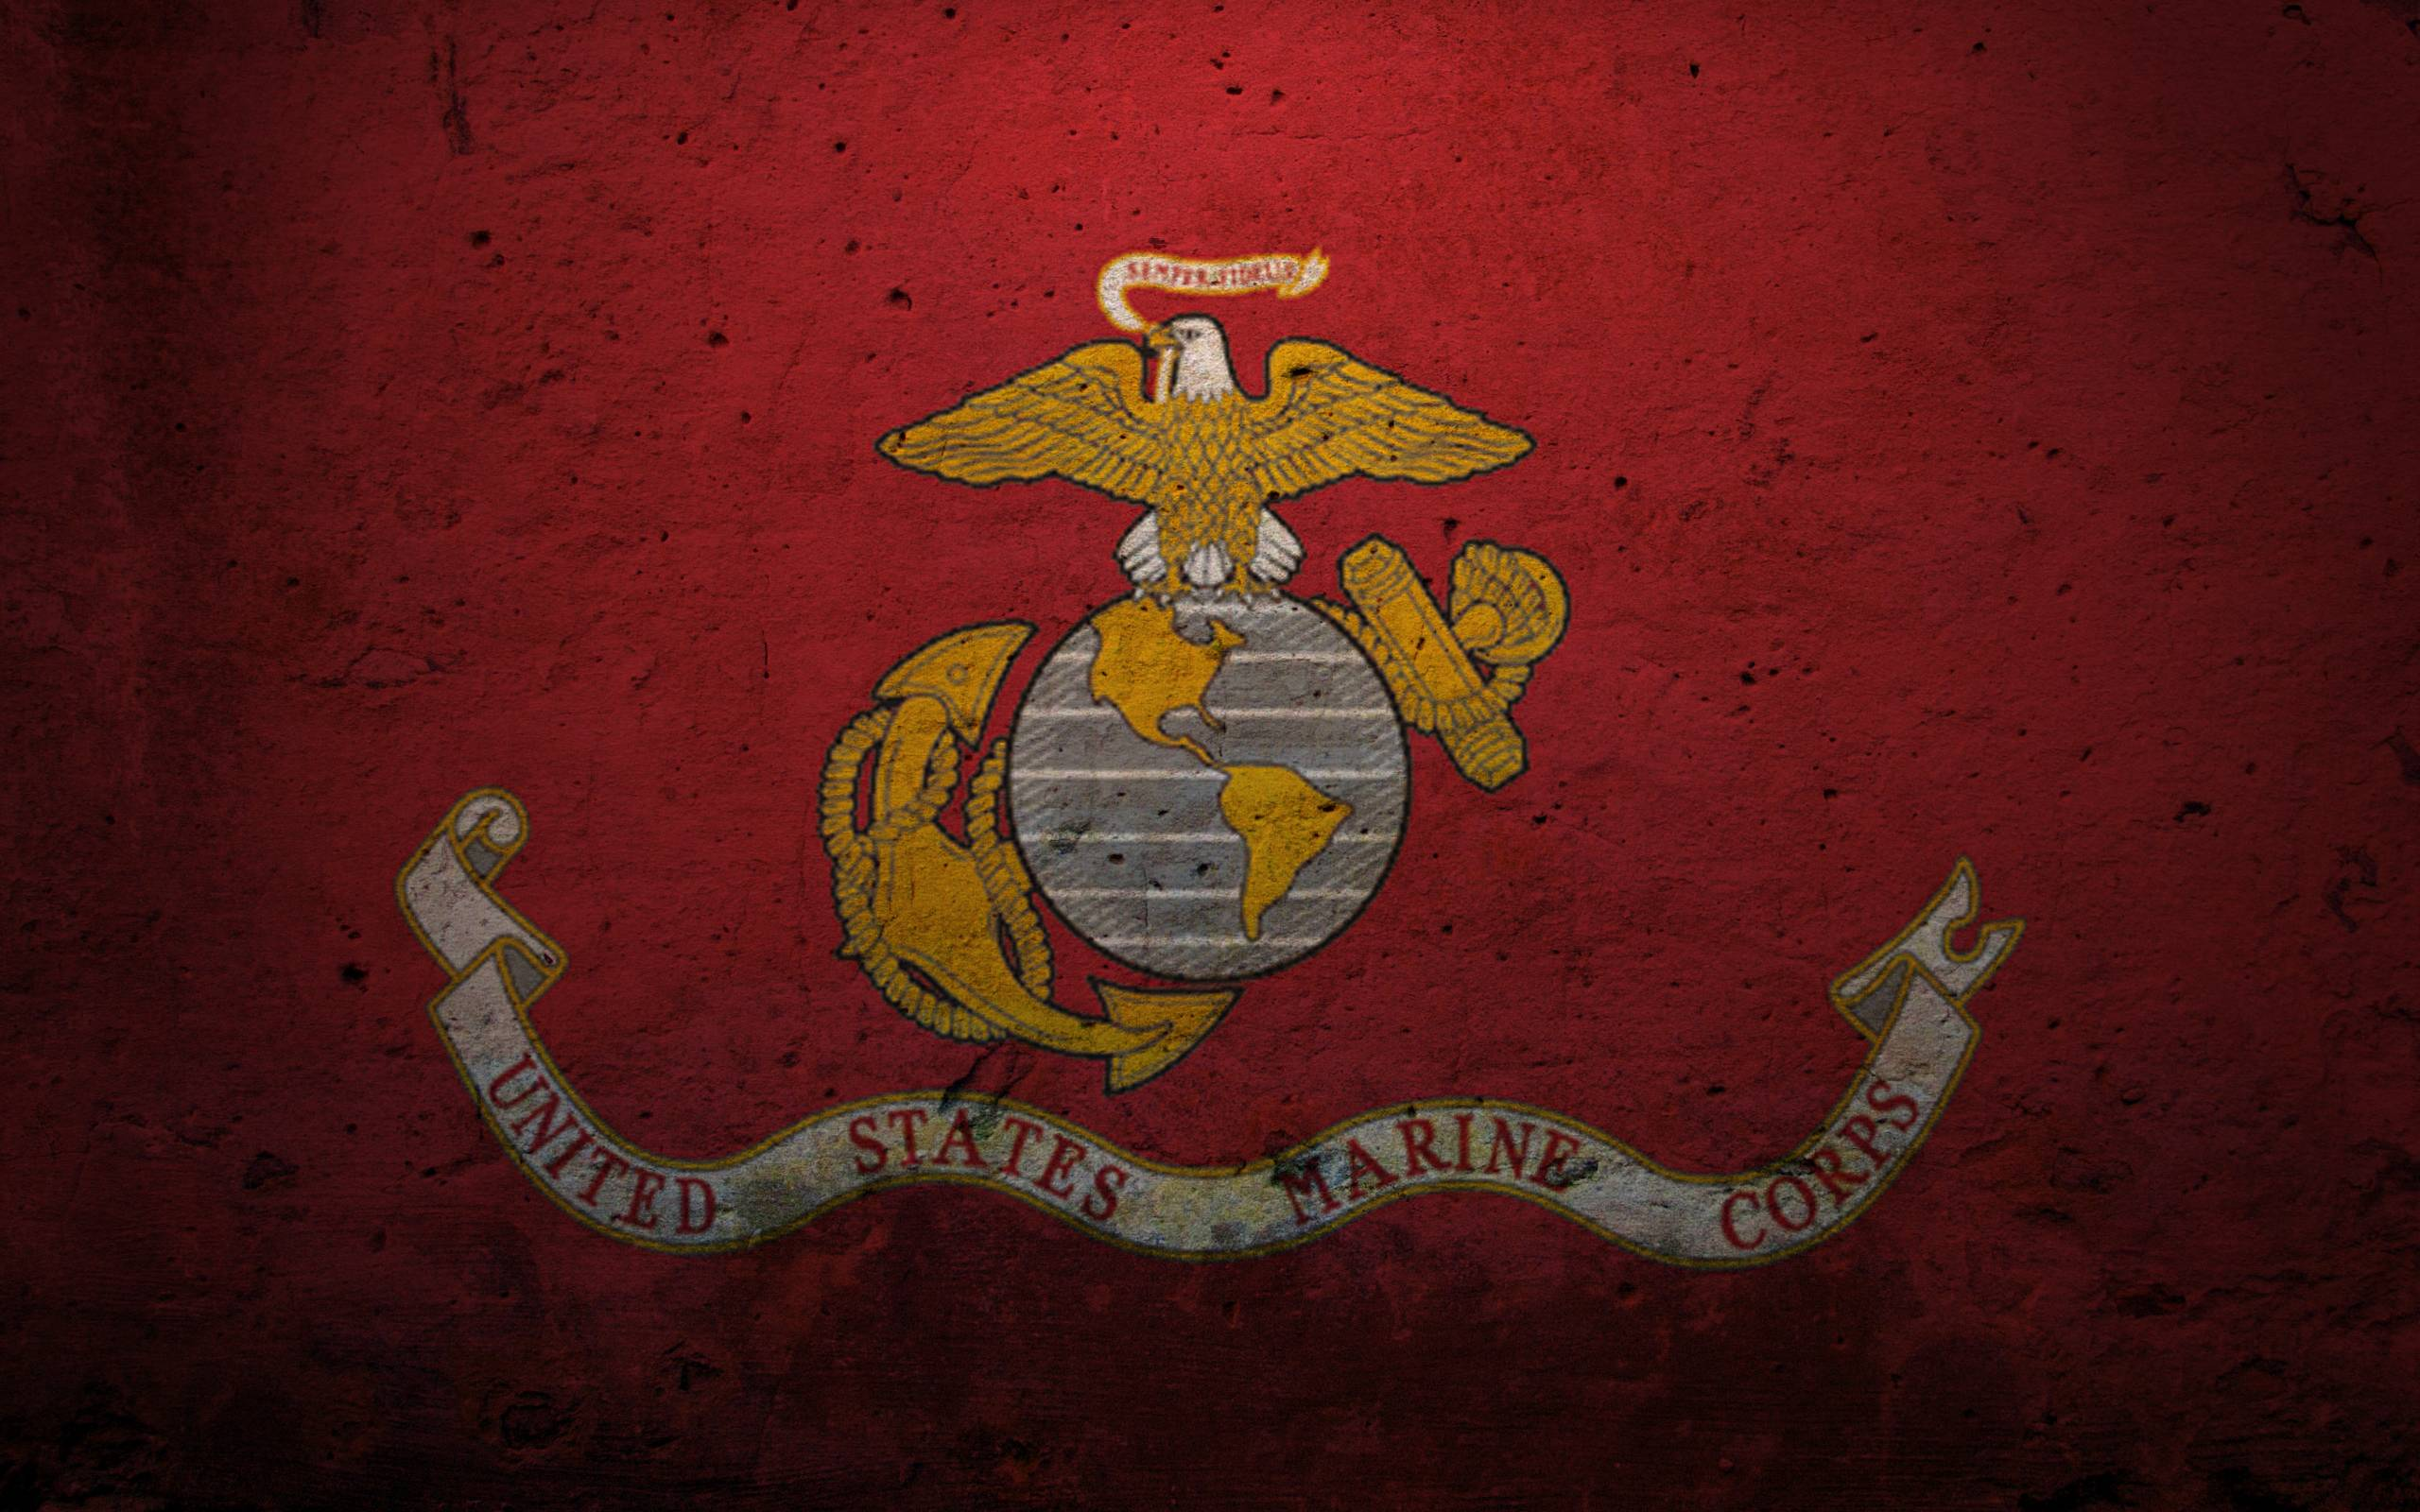 Marine Corps Backgrounds Wallpaper Pictures 32 Cool Wallpaperizcom 2560x1600